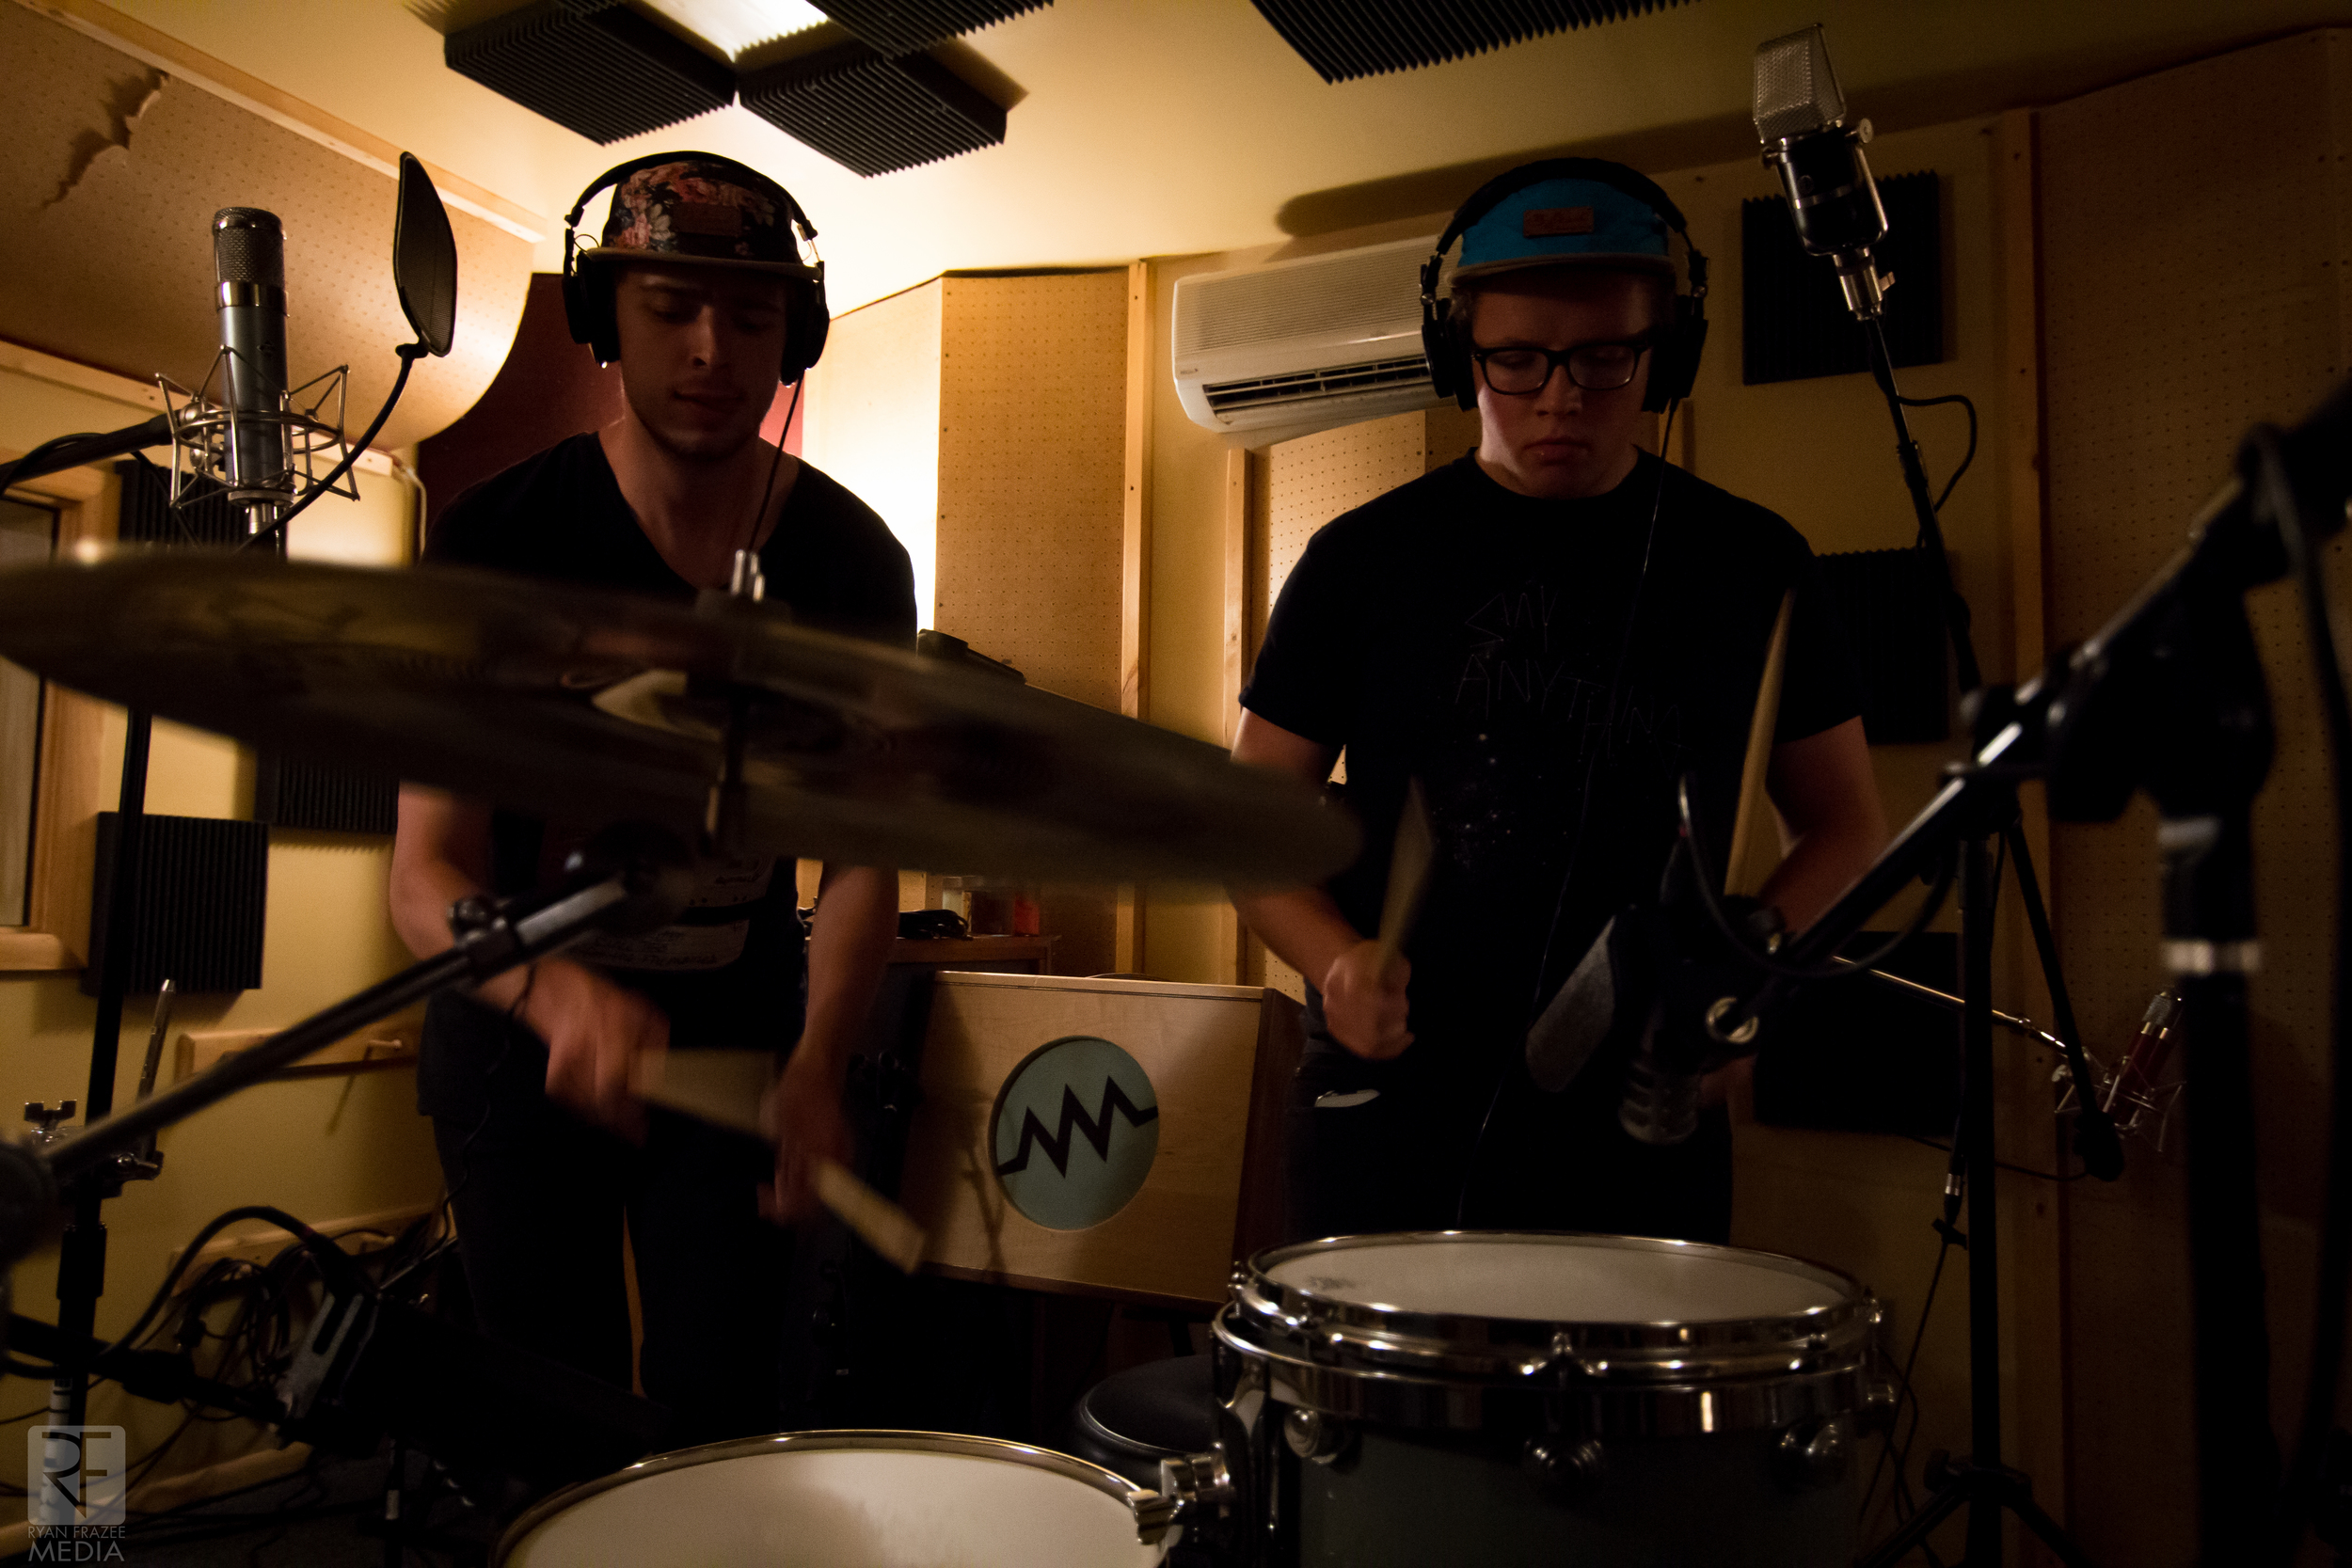 Tj and Josh doing some drum work